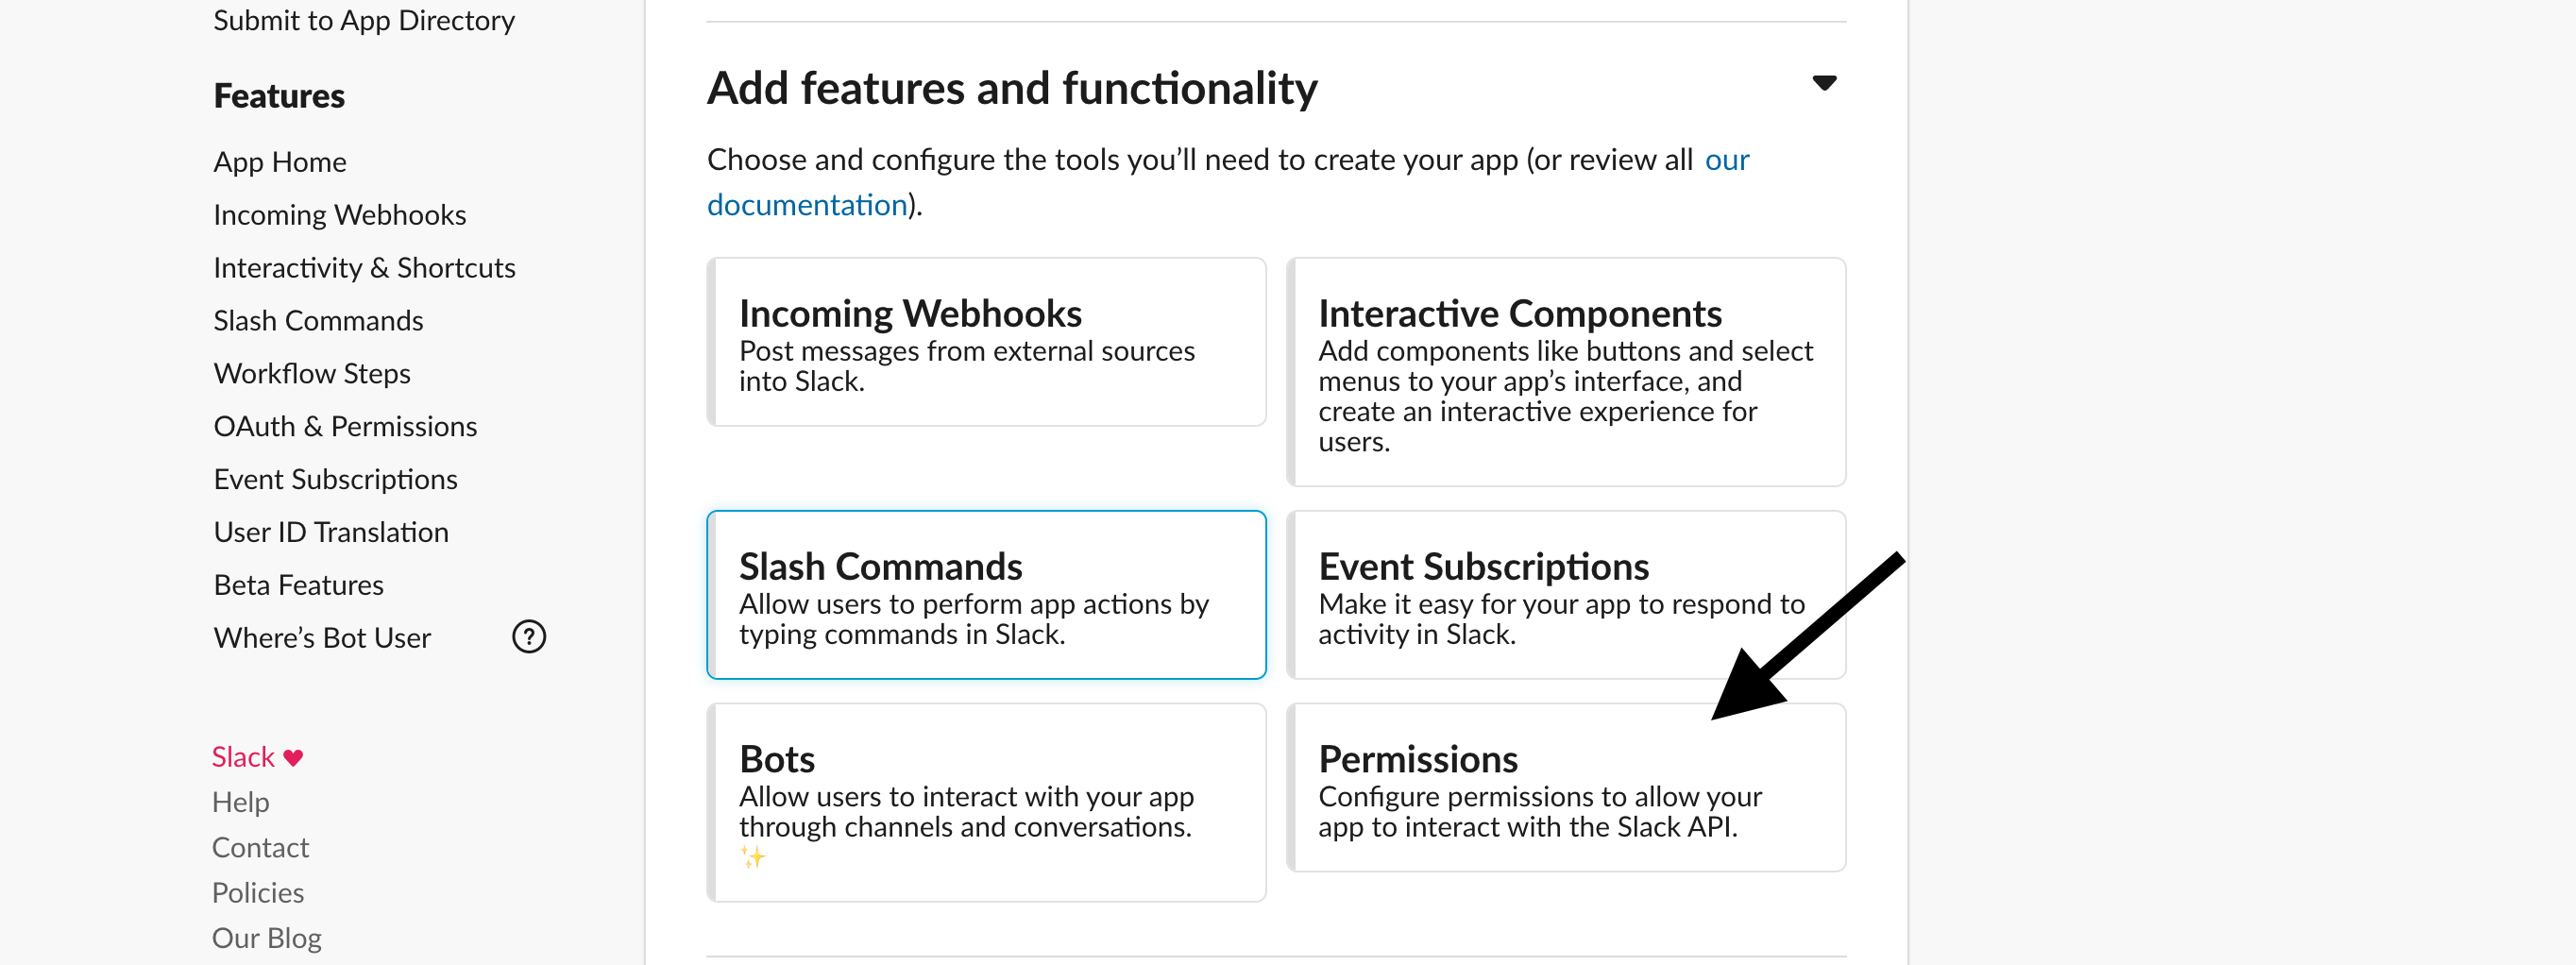 Slack API Configuration Screen with an arrow pointing to permissions